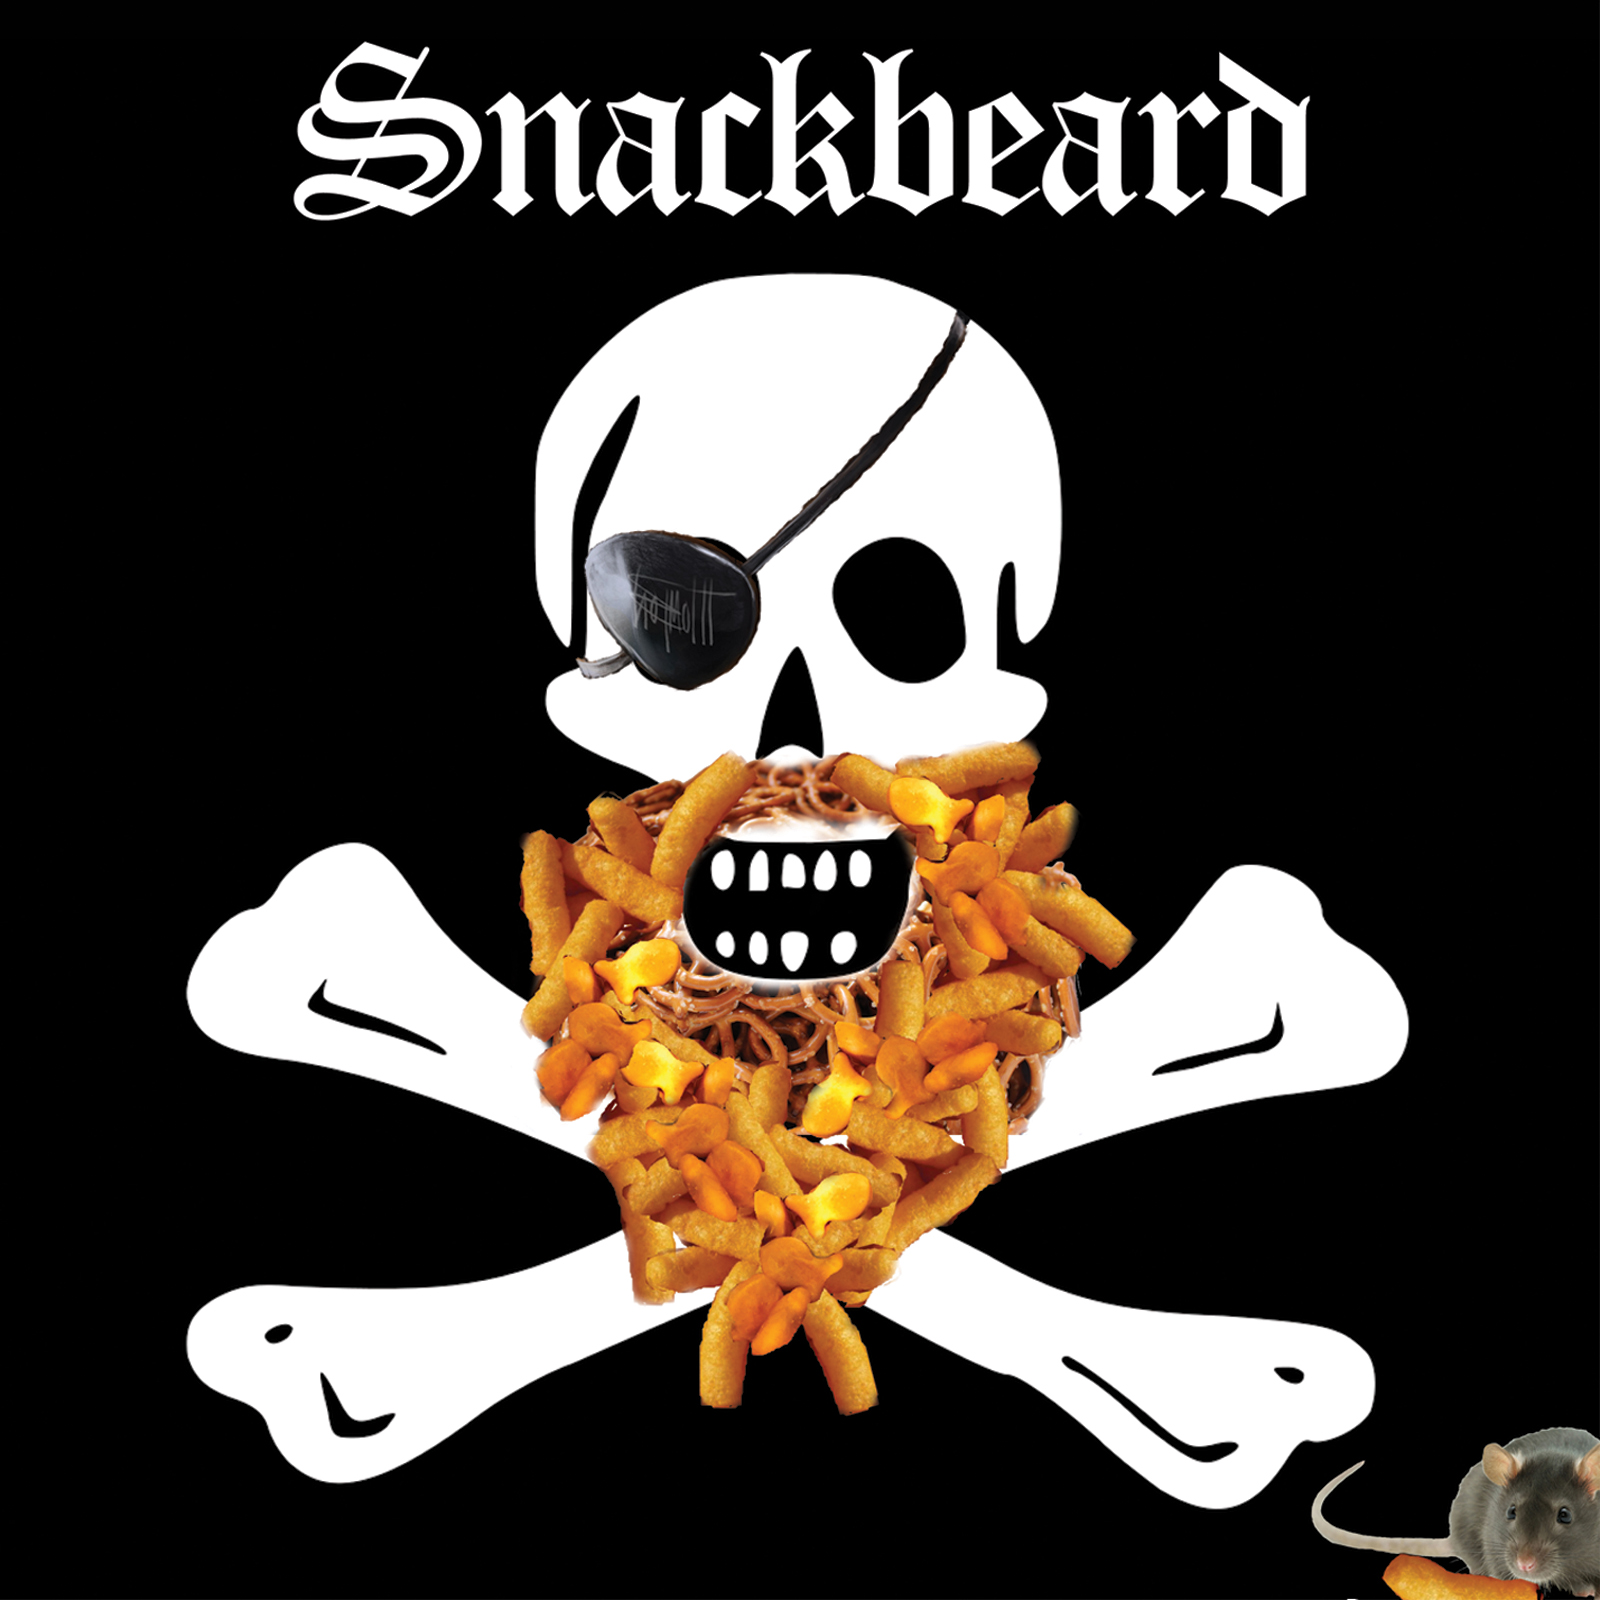 Set Sail with Snackbeard